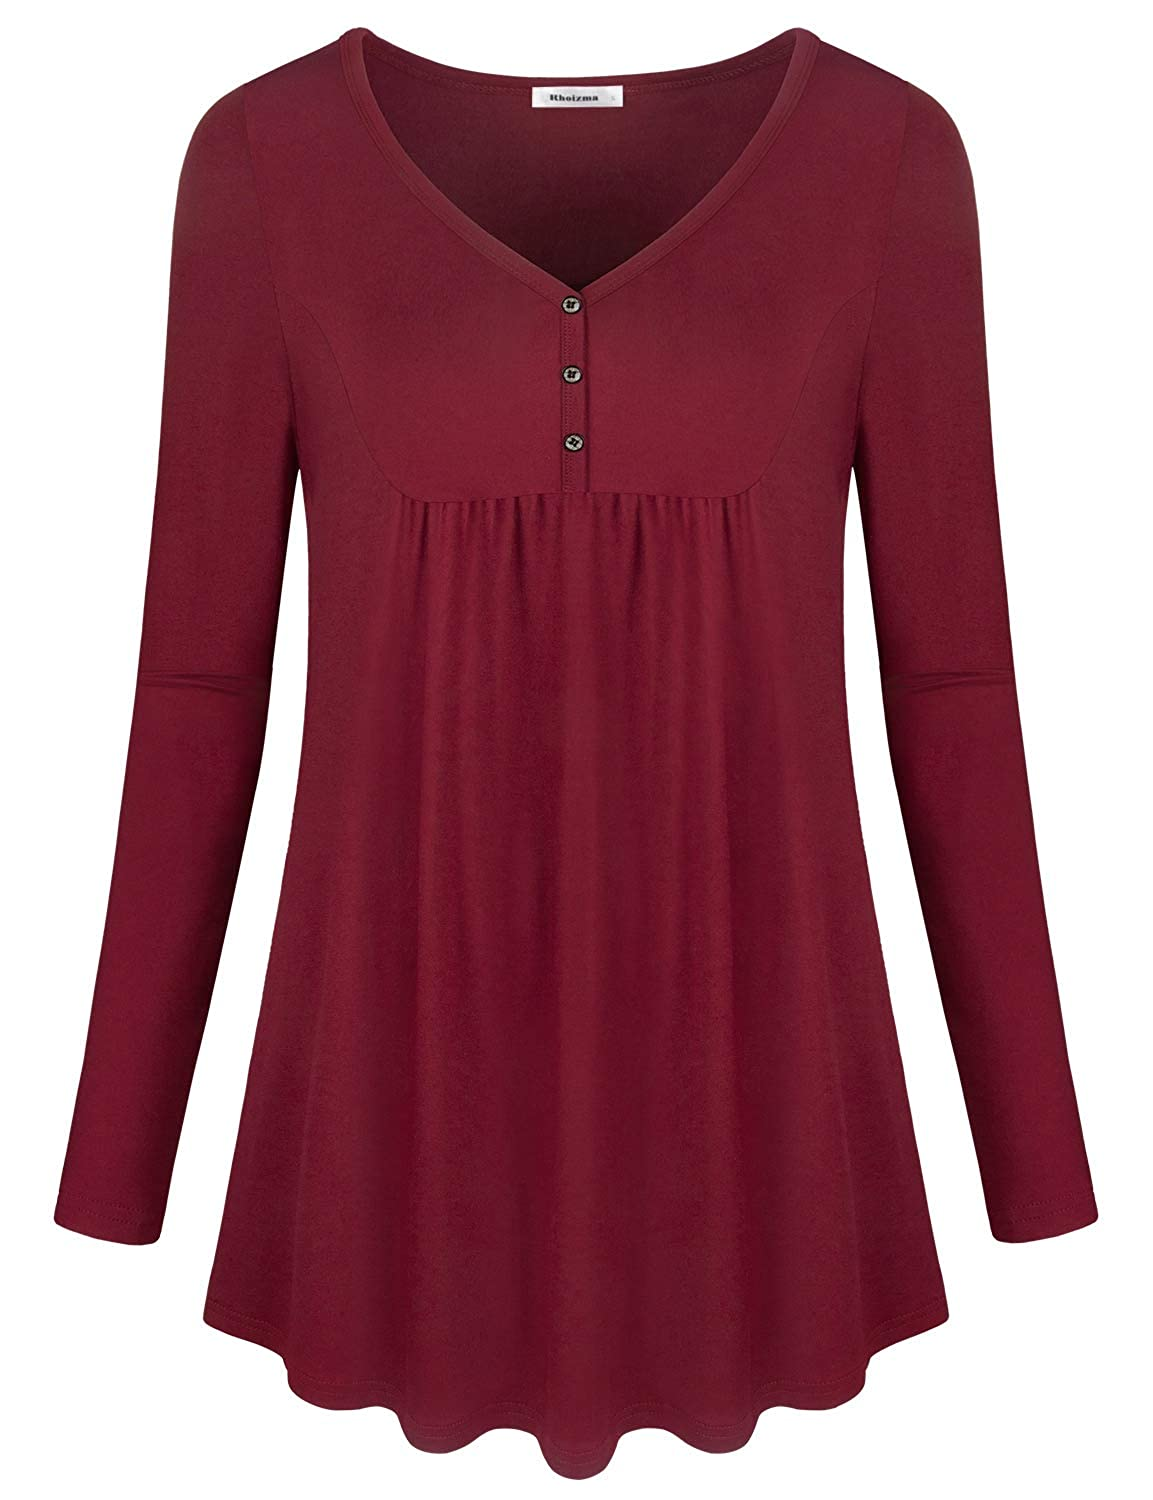 d7b6aaefe6b Online Cheap wholesale Rhoizma Womens Long Sleeve Tunic Tops,Button V Neck  Pleated Casual Shirts Tunics Suppliers